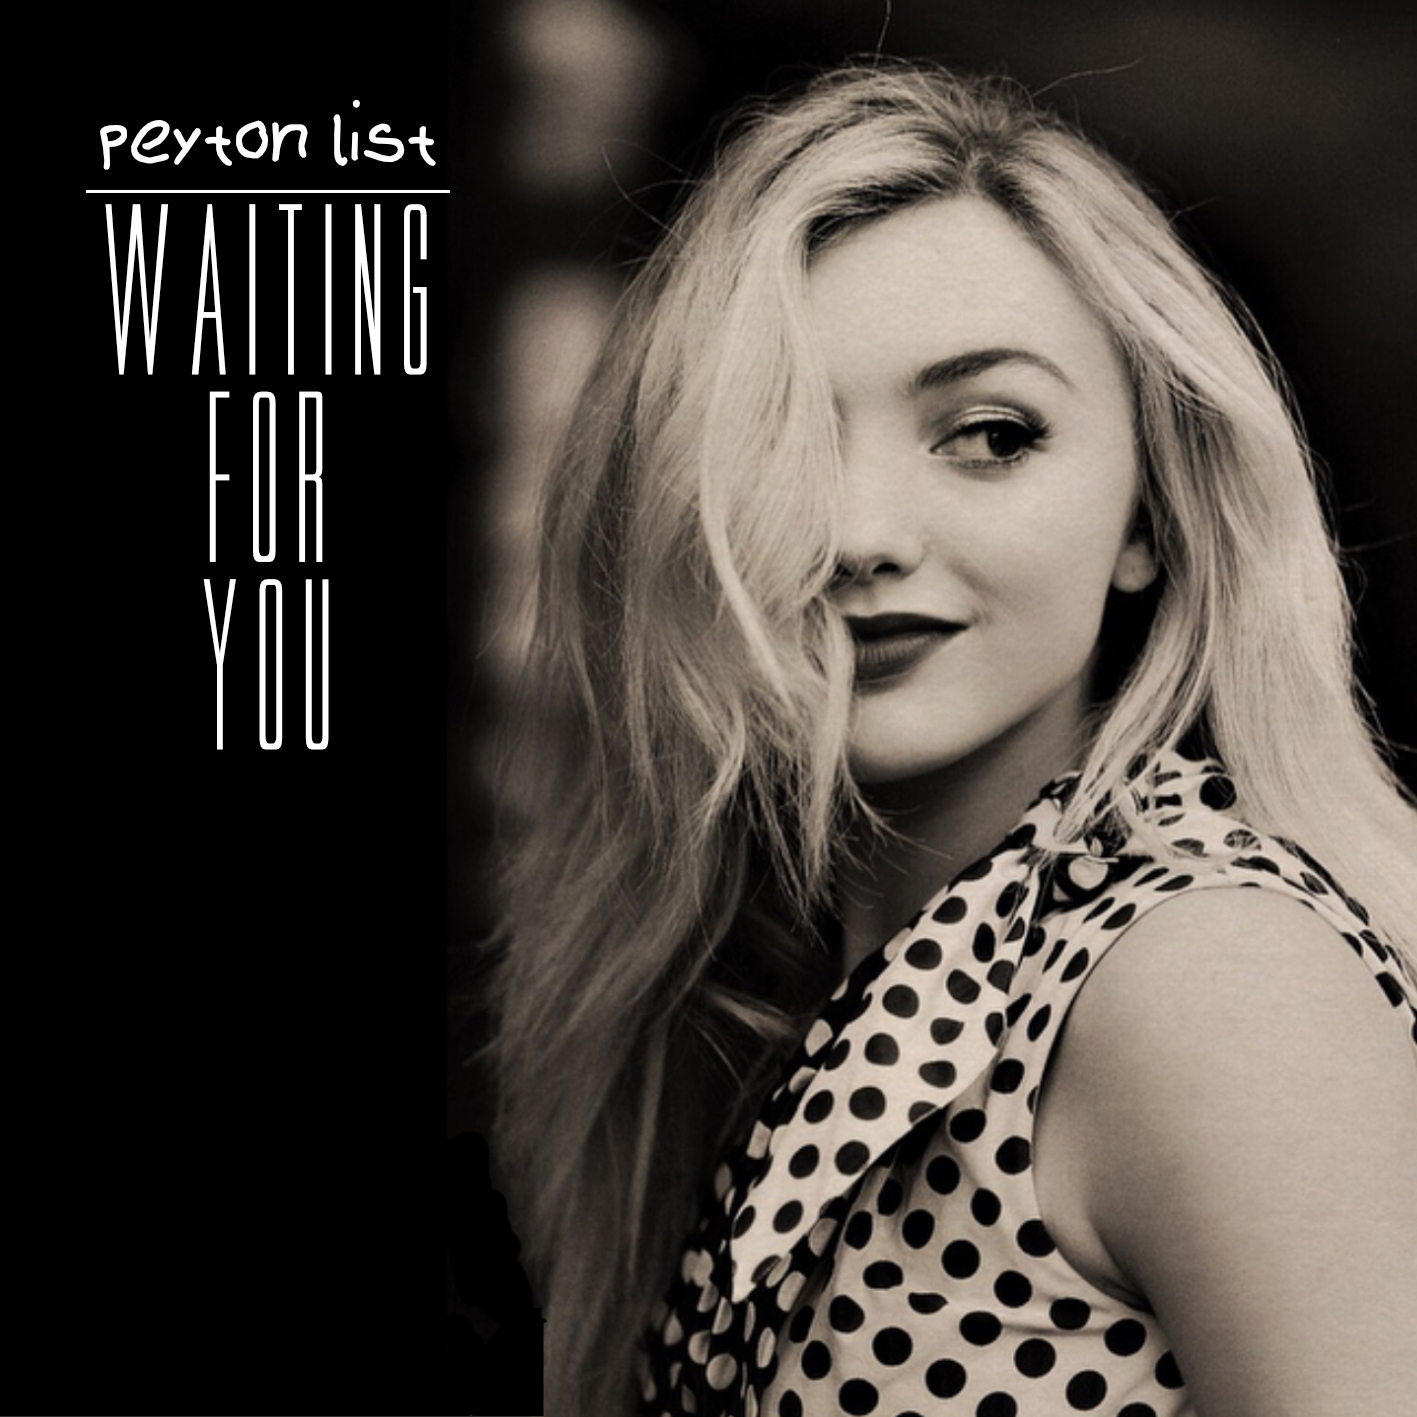 Waiting For You (Peyton List album)